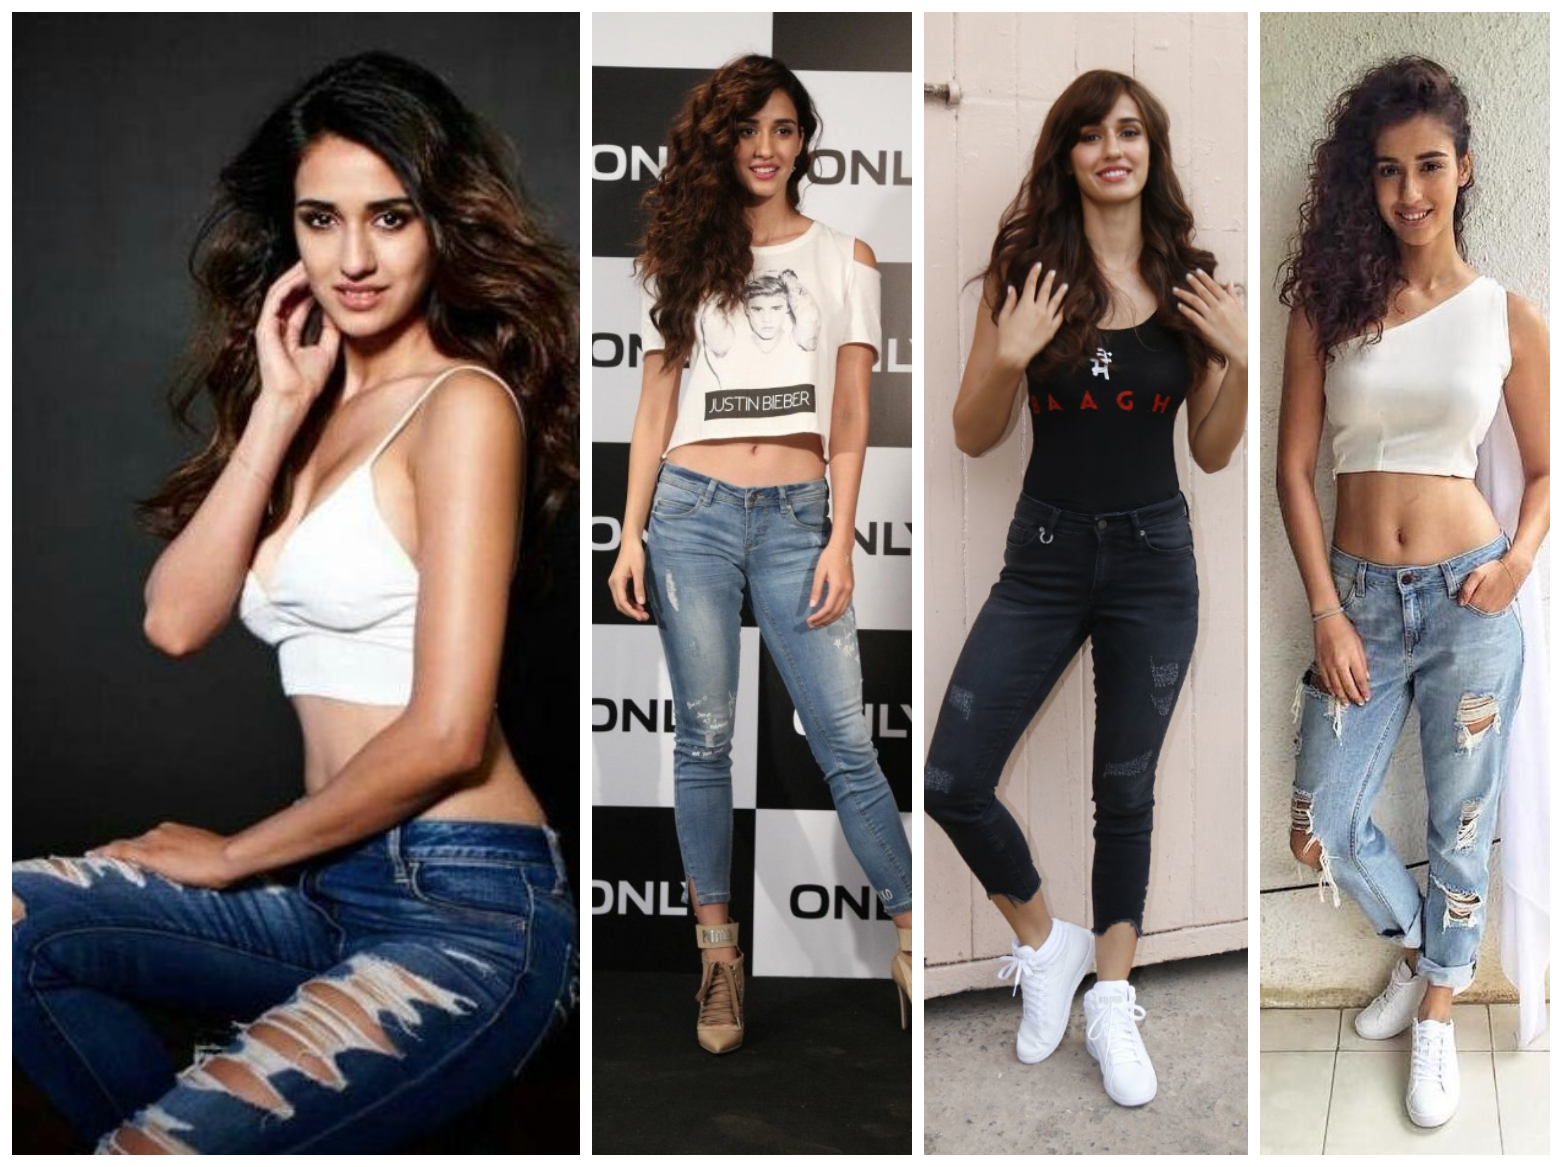 Bollywood's leading ladies who loves to endorse Ripped Jeans - Disha Patani